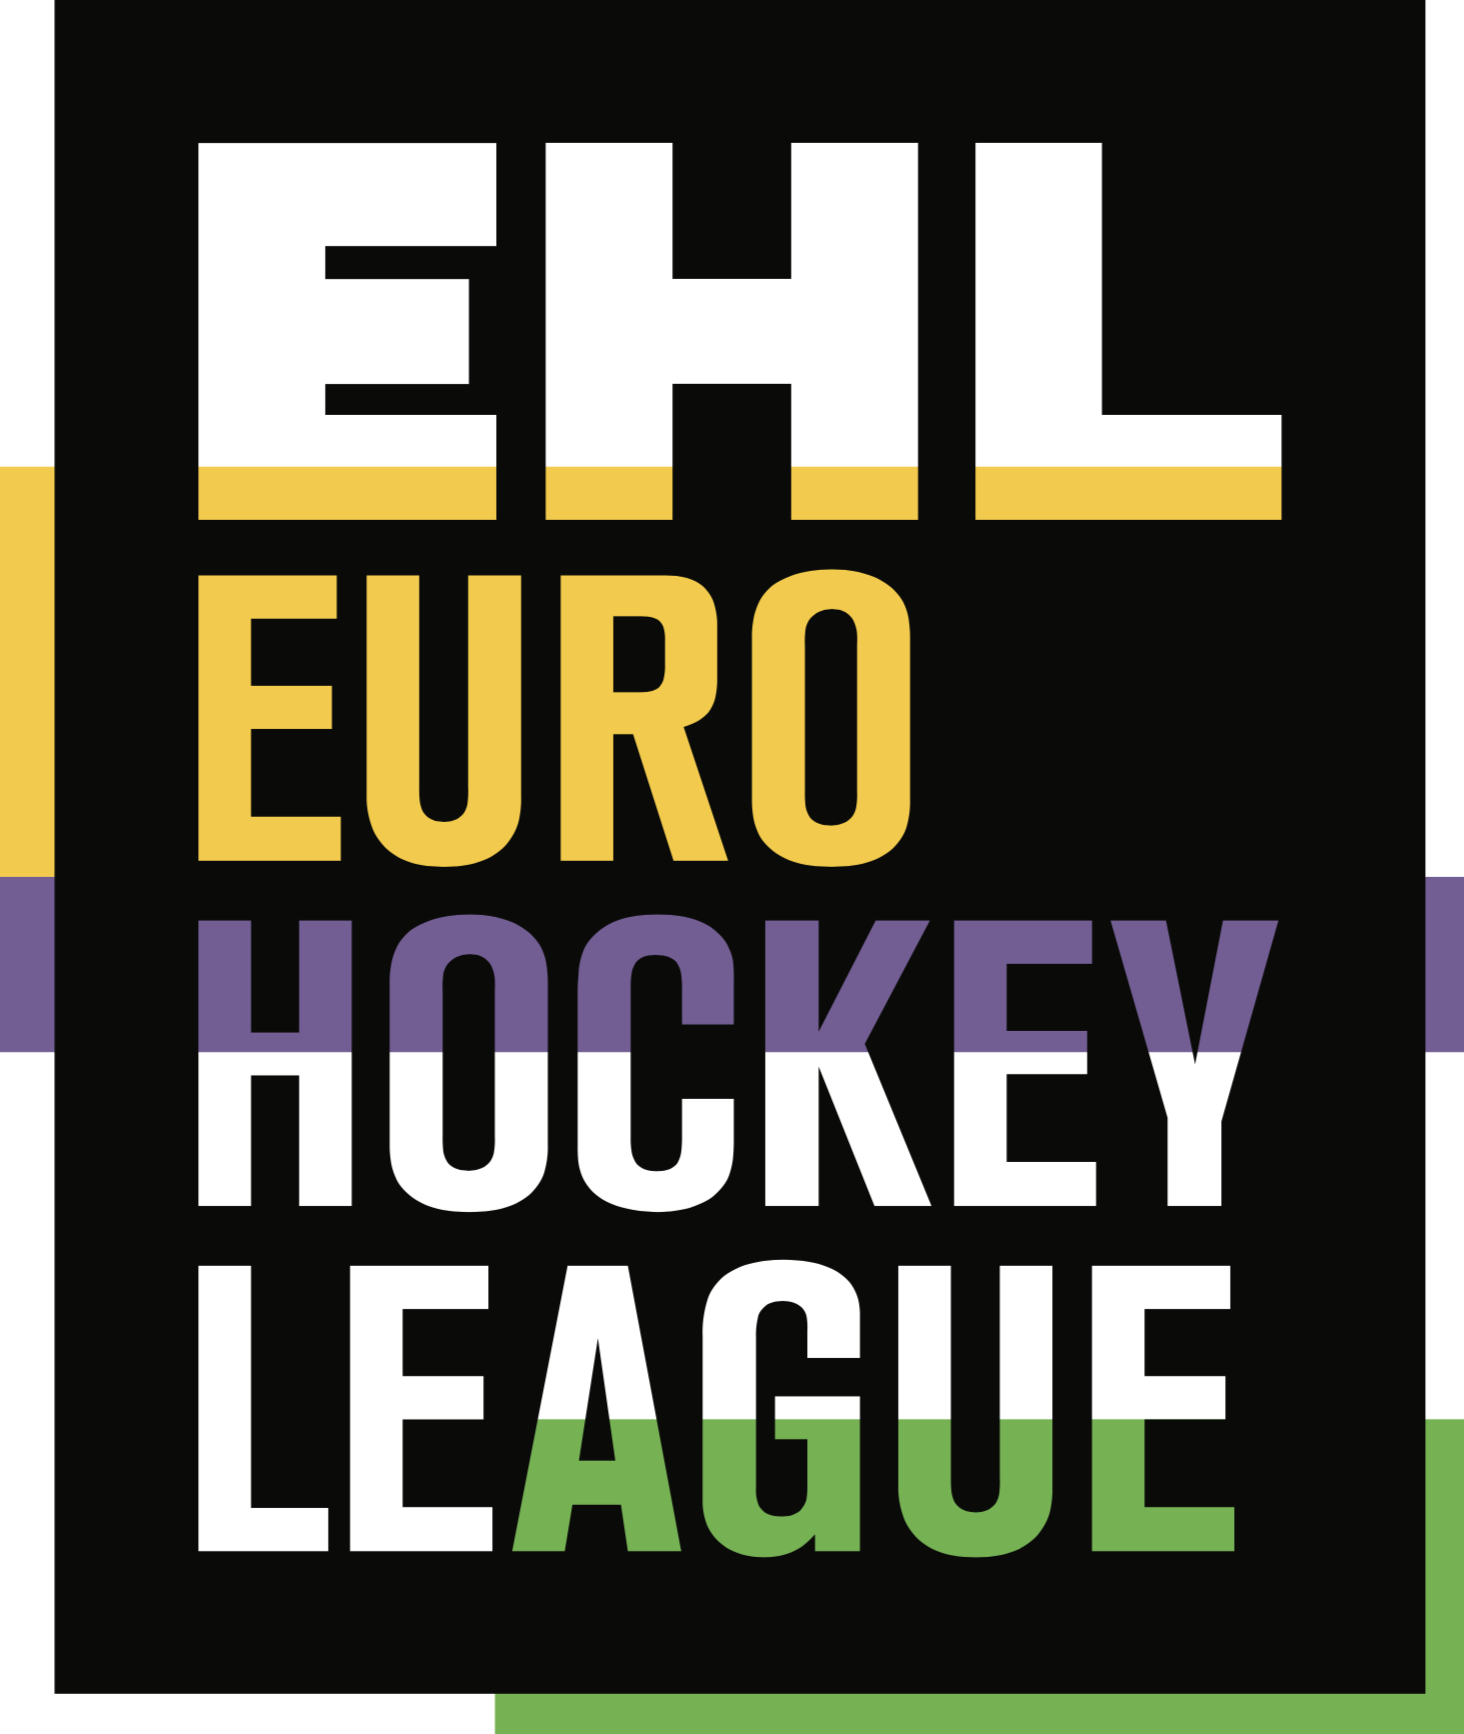 Finales Euro Hockey League in Oktober